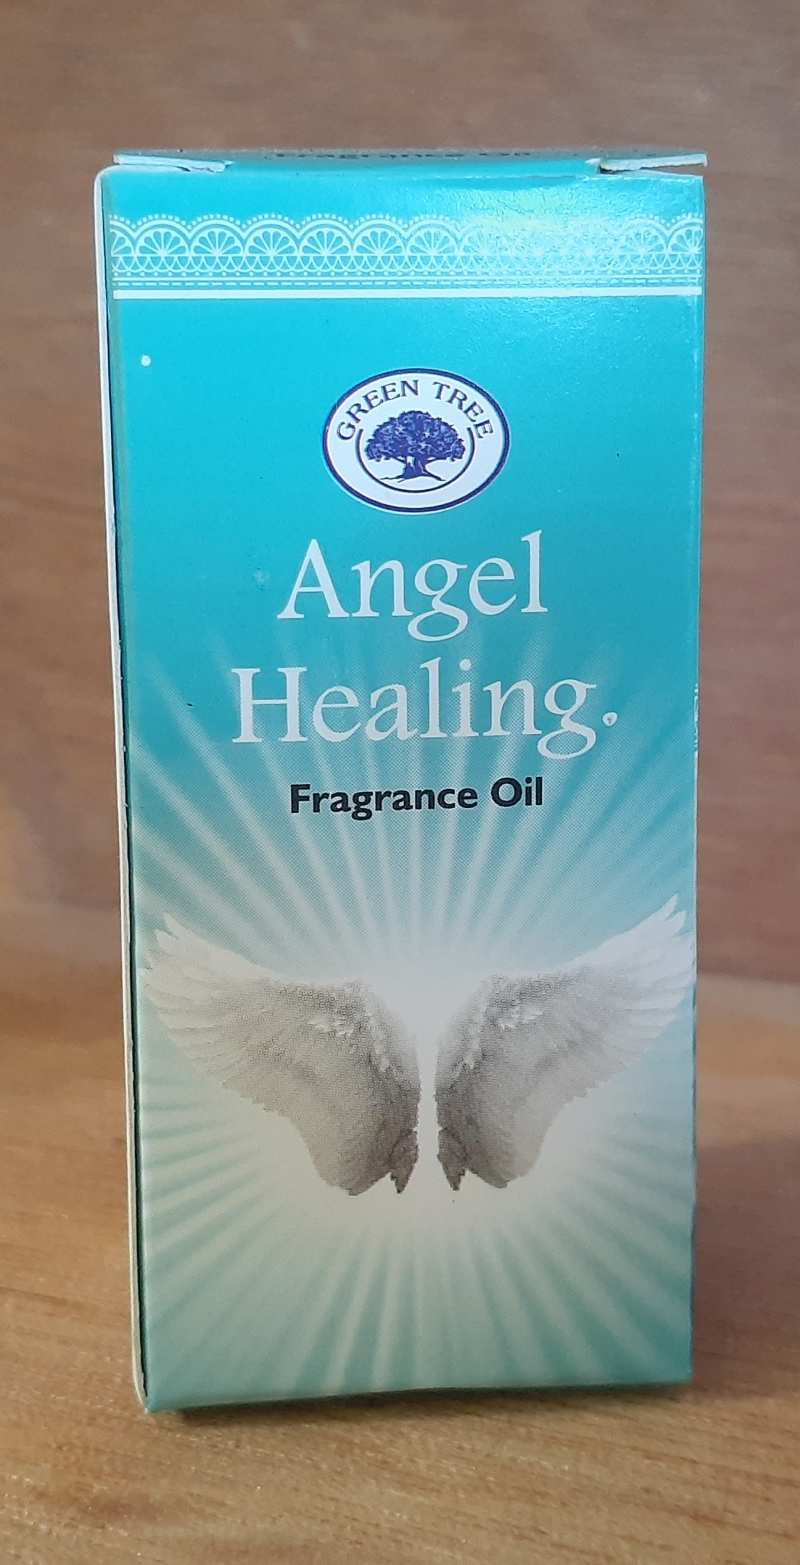 FRAGRANCE OIL ANGEL HEALING